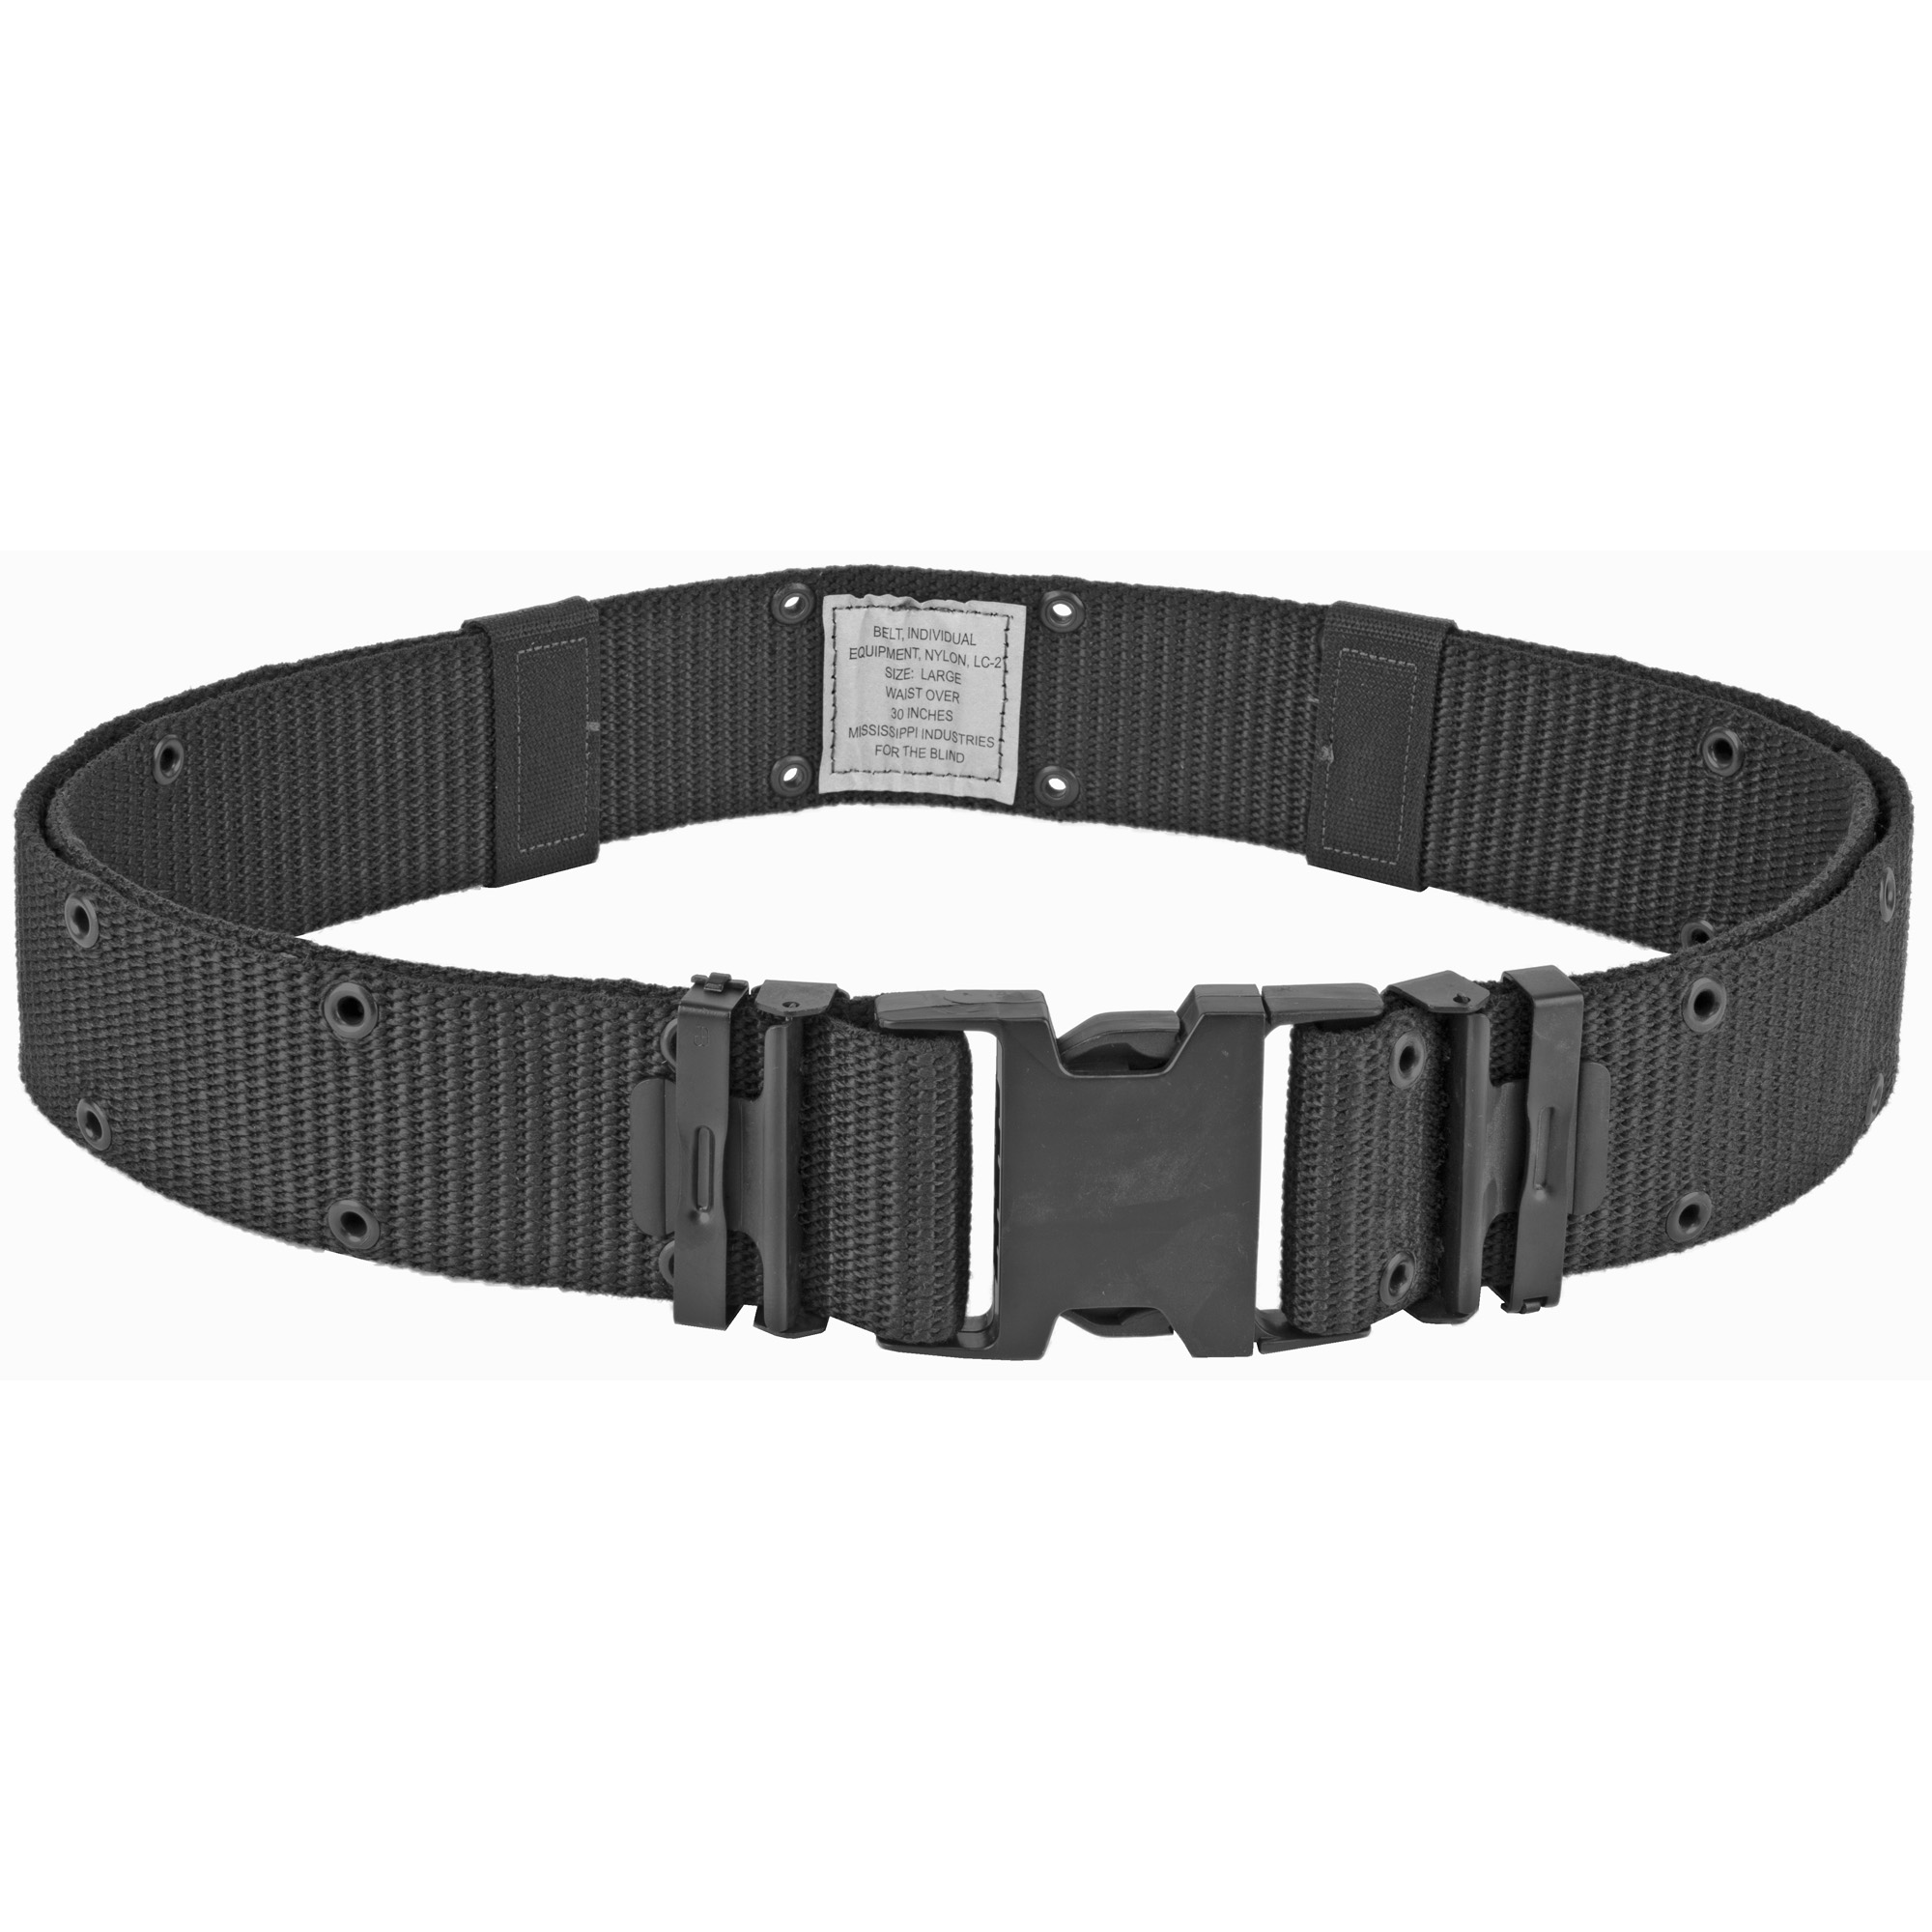 """The Bianchi M1020 is a mil-spec web pistol belt with official military shatter-resistant plastic buckle. It features dual grommeted holes running the length of the belt for adjustability. Metal belt keepers and 2.25"""" (58 mm) belt width. Offered in one-size that fits 30"""" - 48"""""""